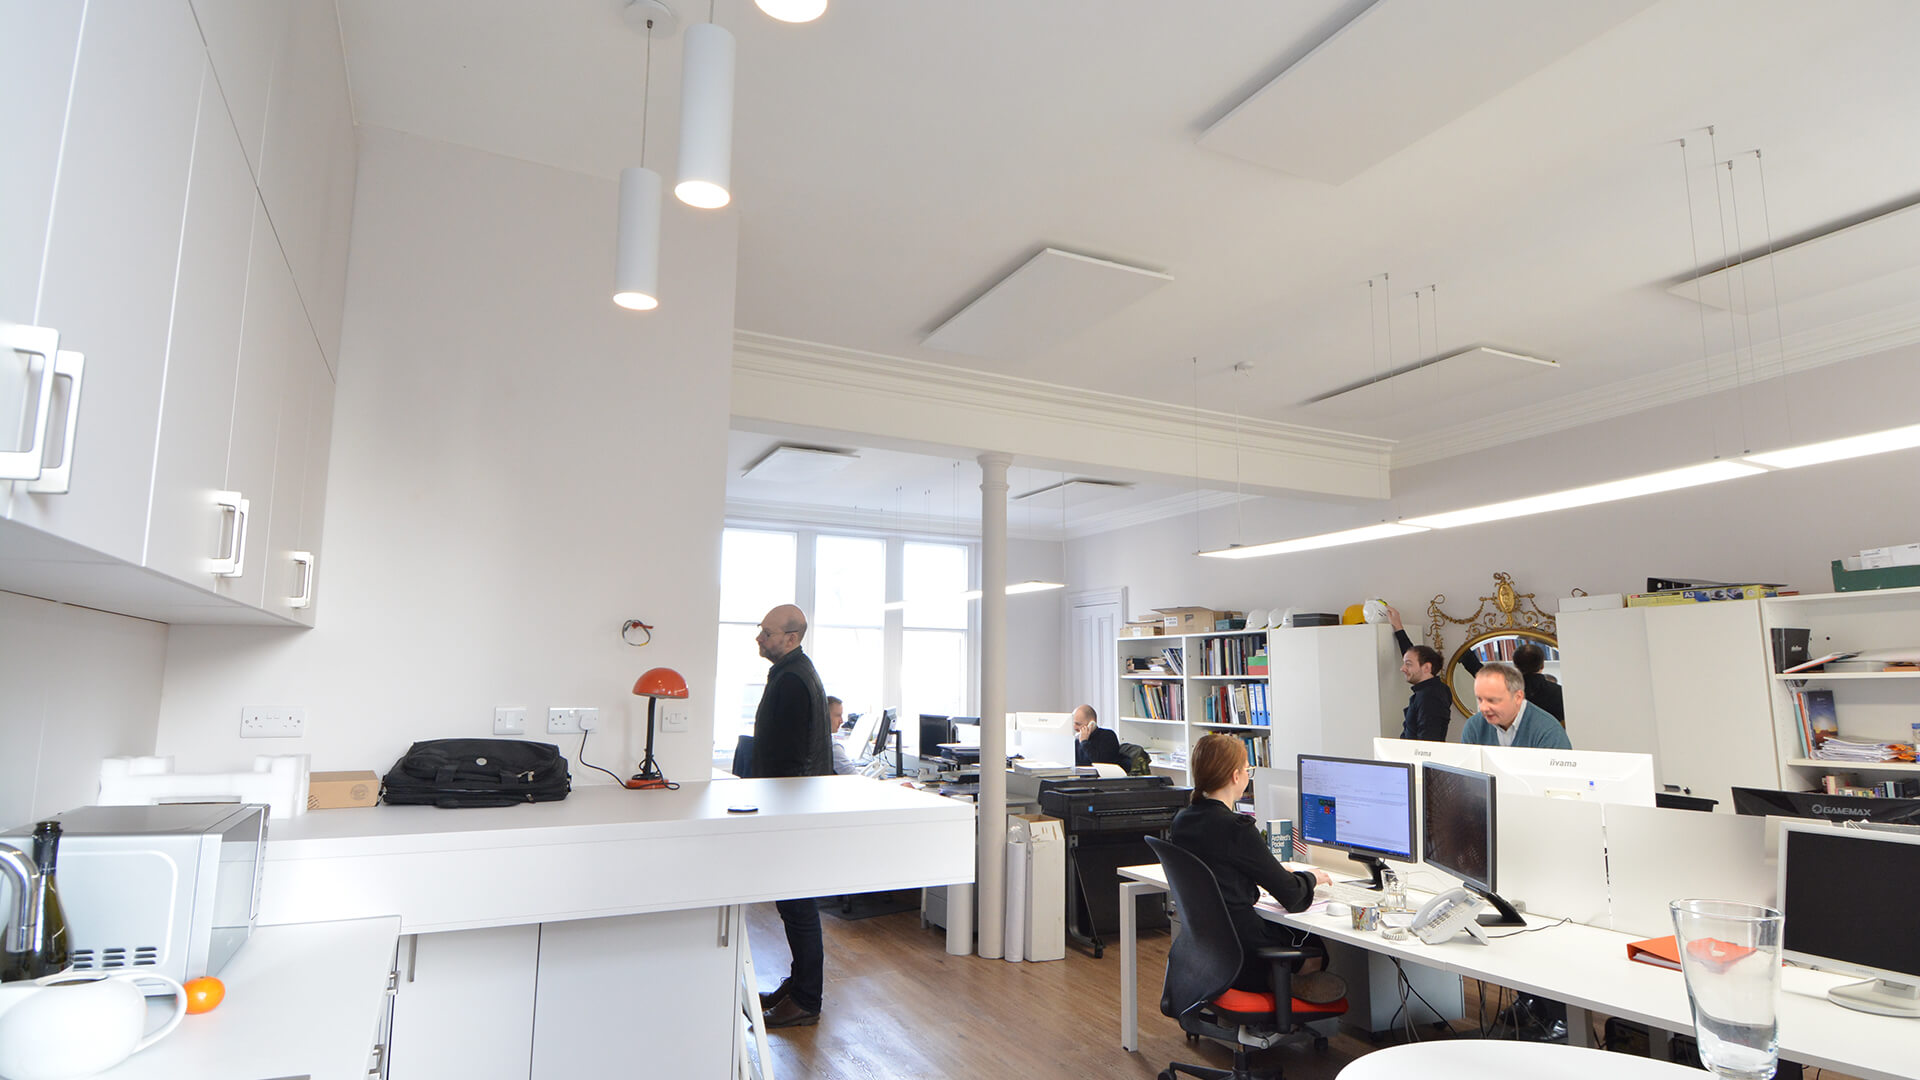 Office space redevelopment